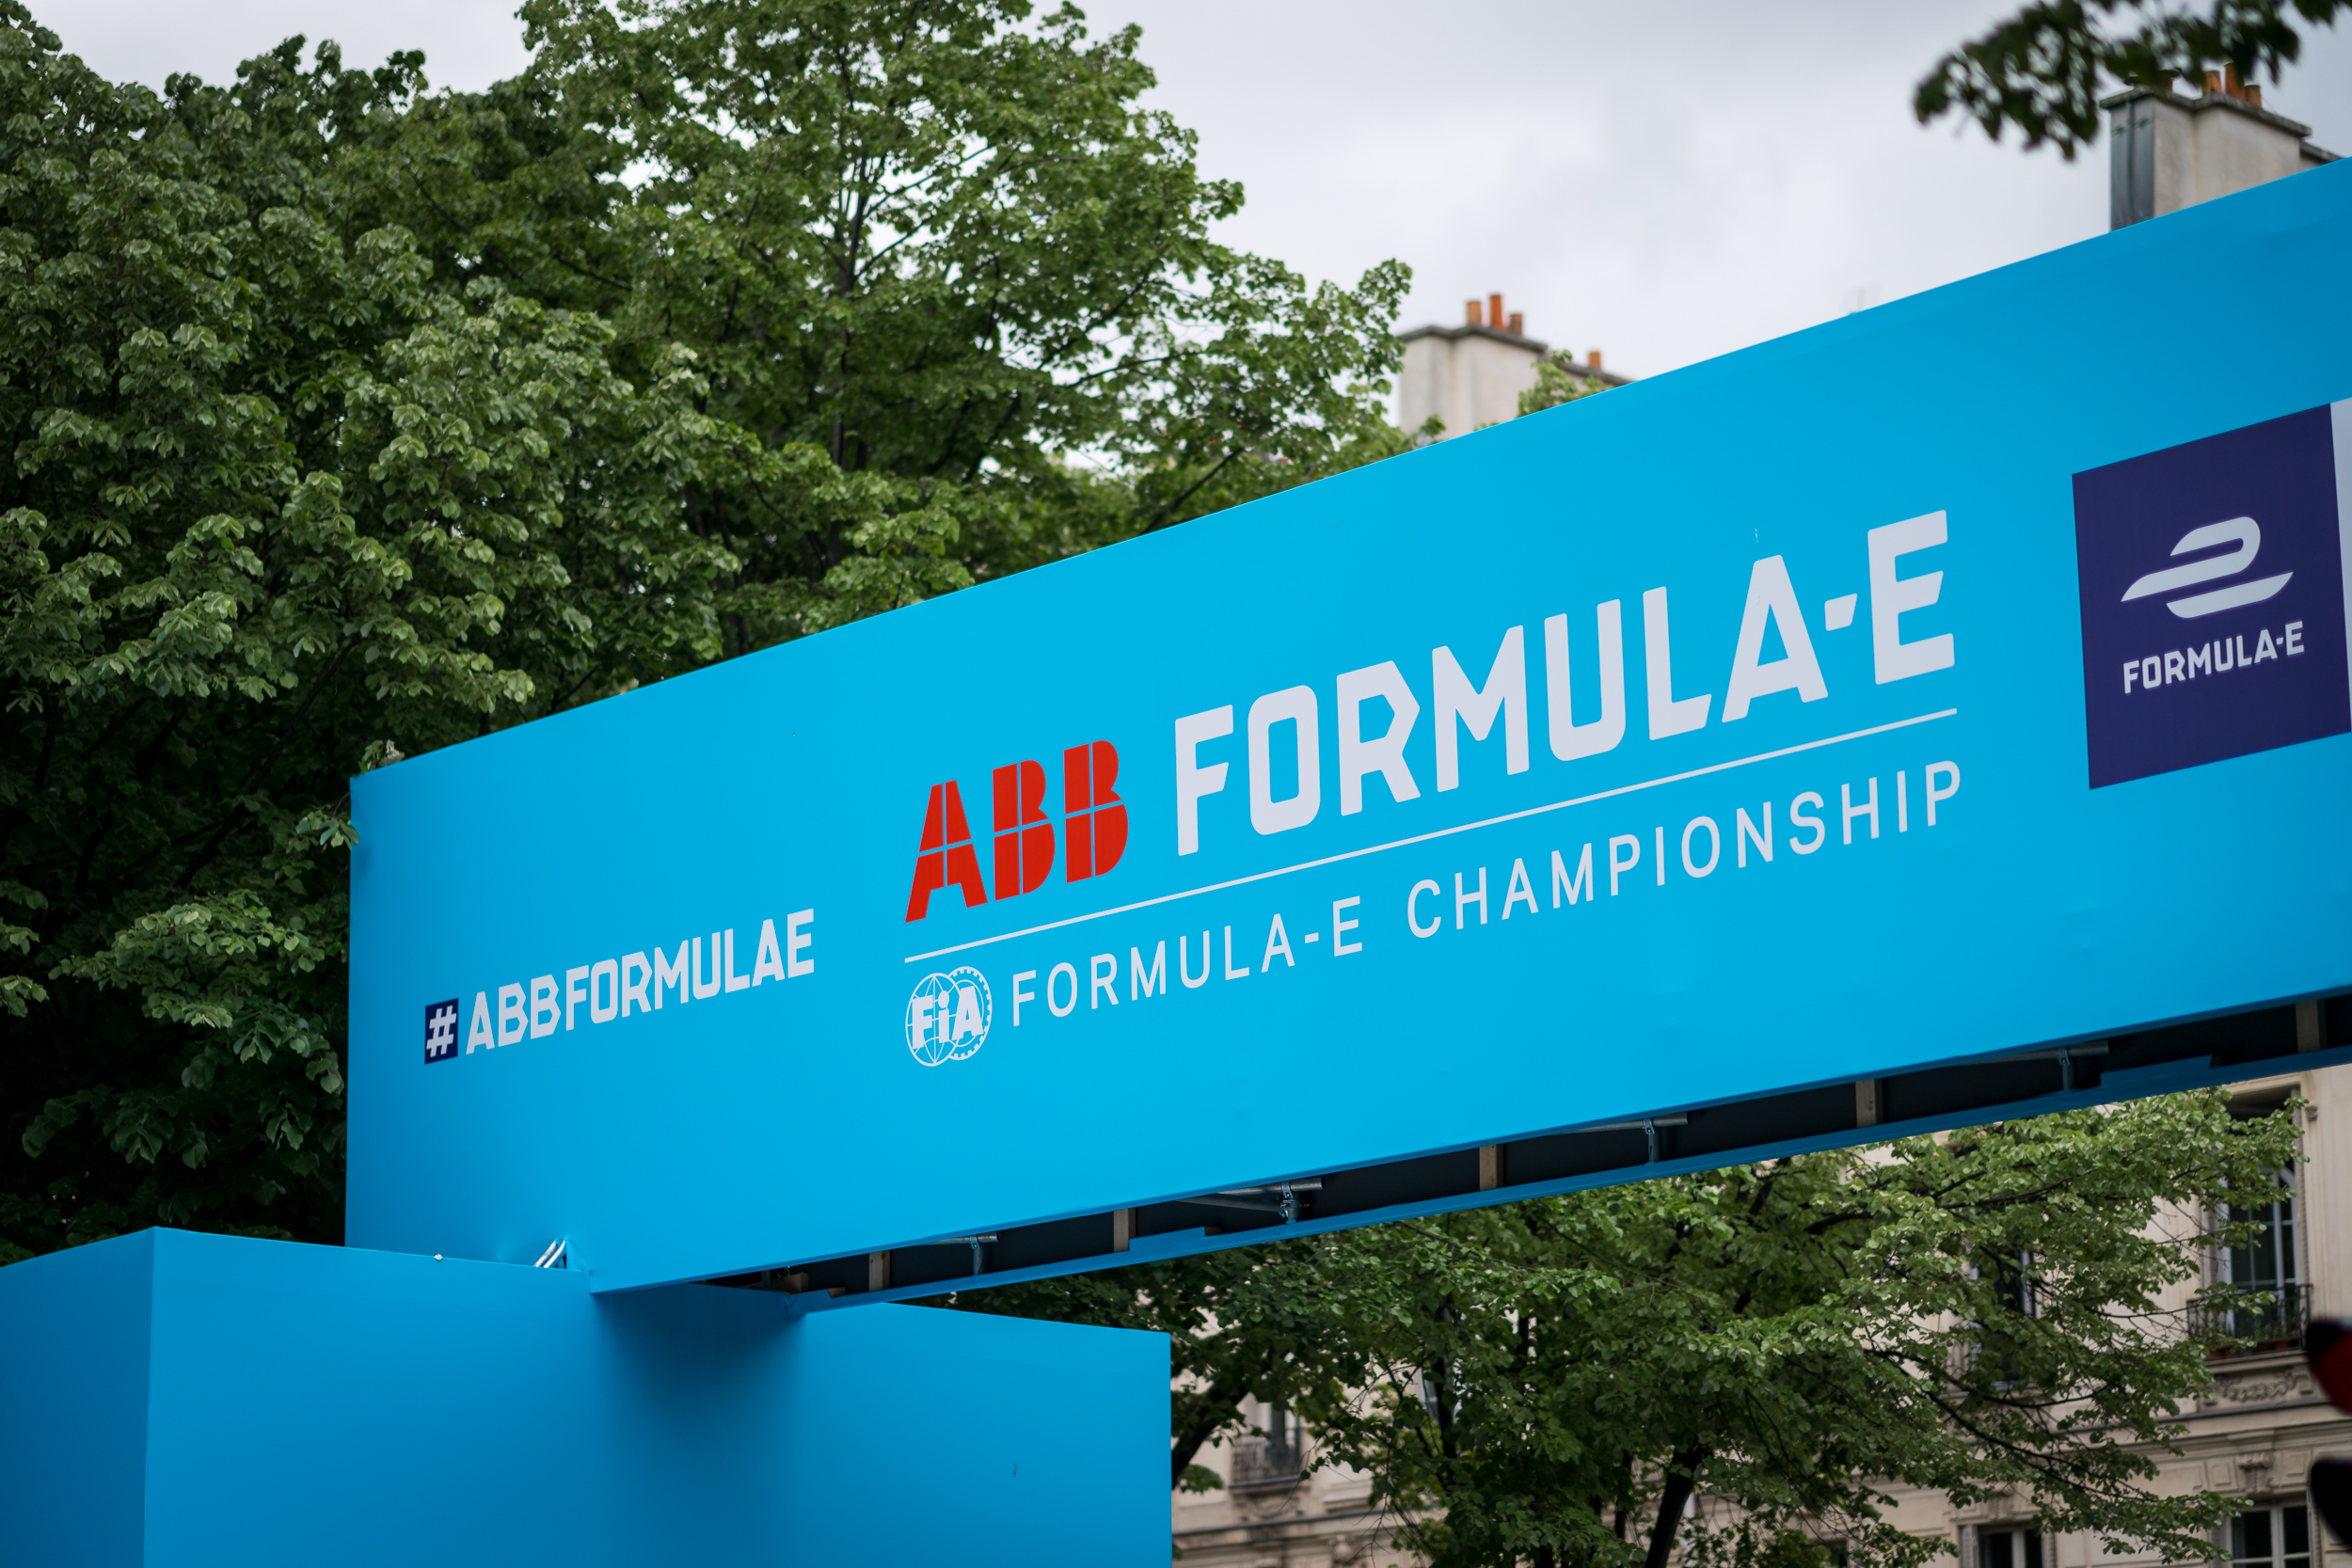 BMW i_Formula E Paris 2019_26&27-04-19_Florian Leger_SHARE & DARE_HD_N°-67.jpg